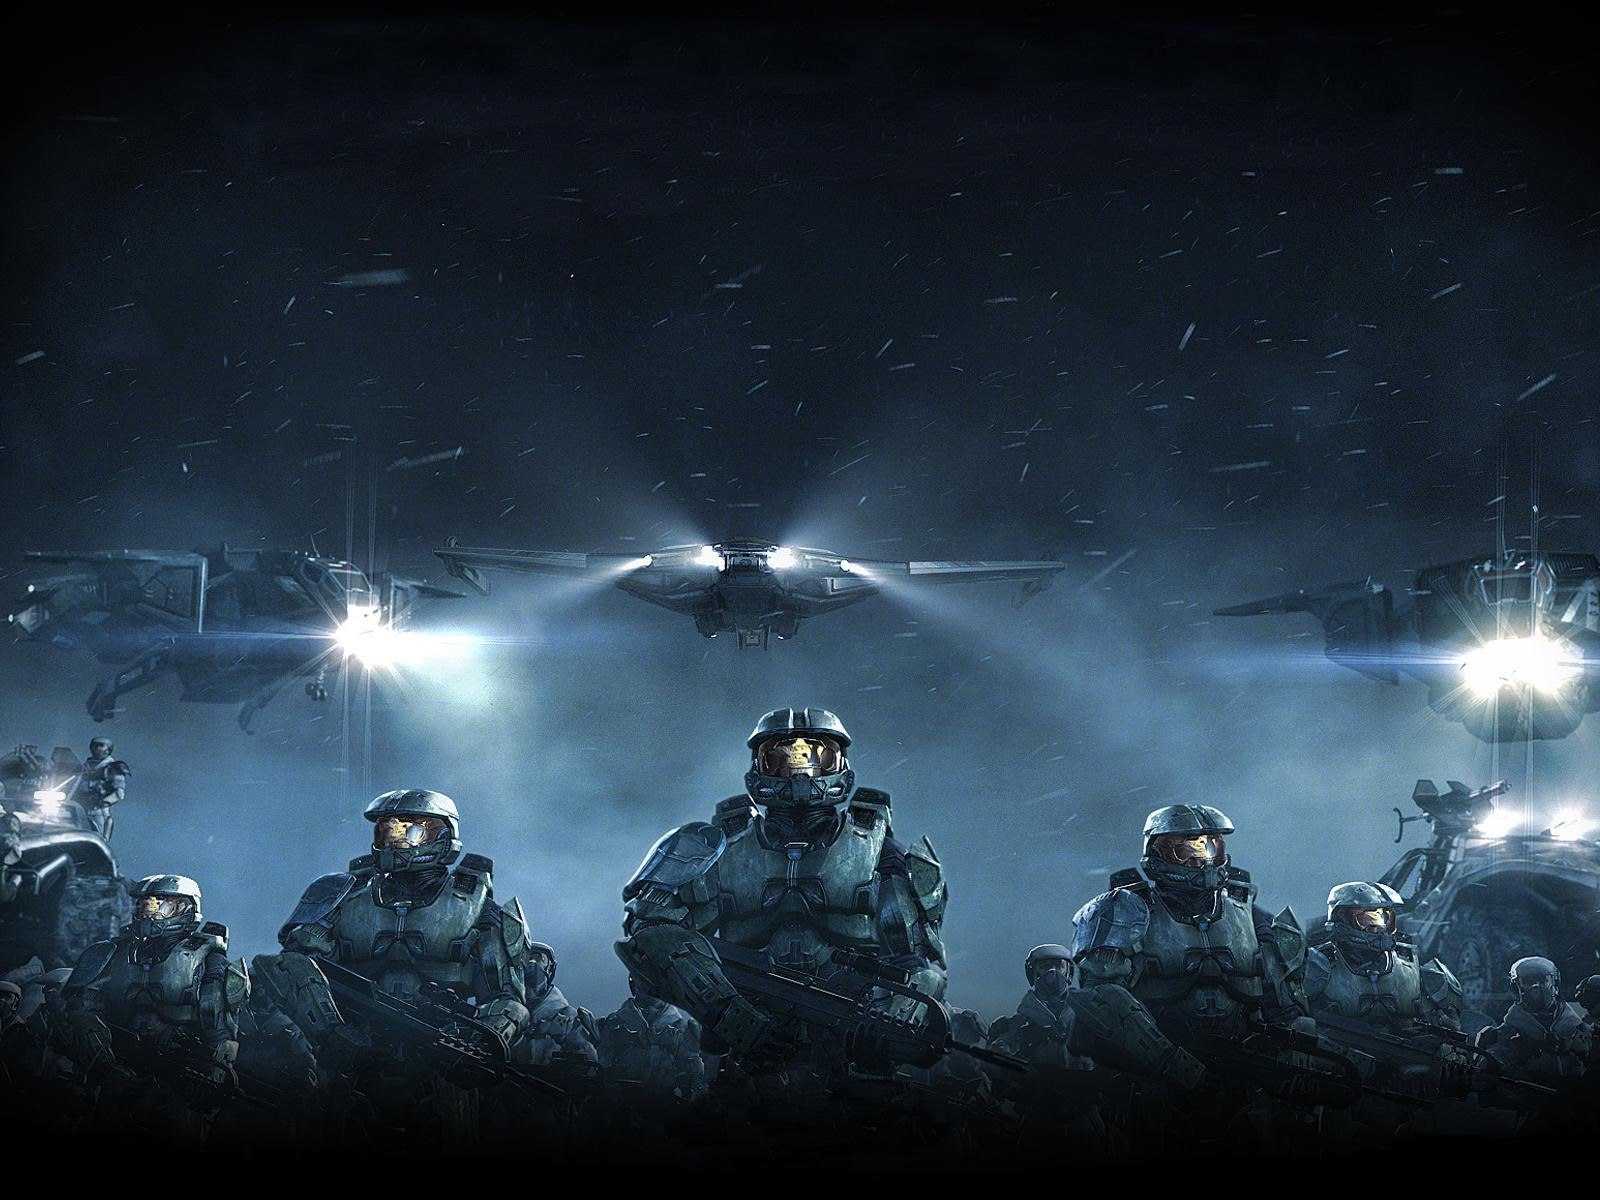 halo wallpapers 3 1600x1200